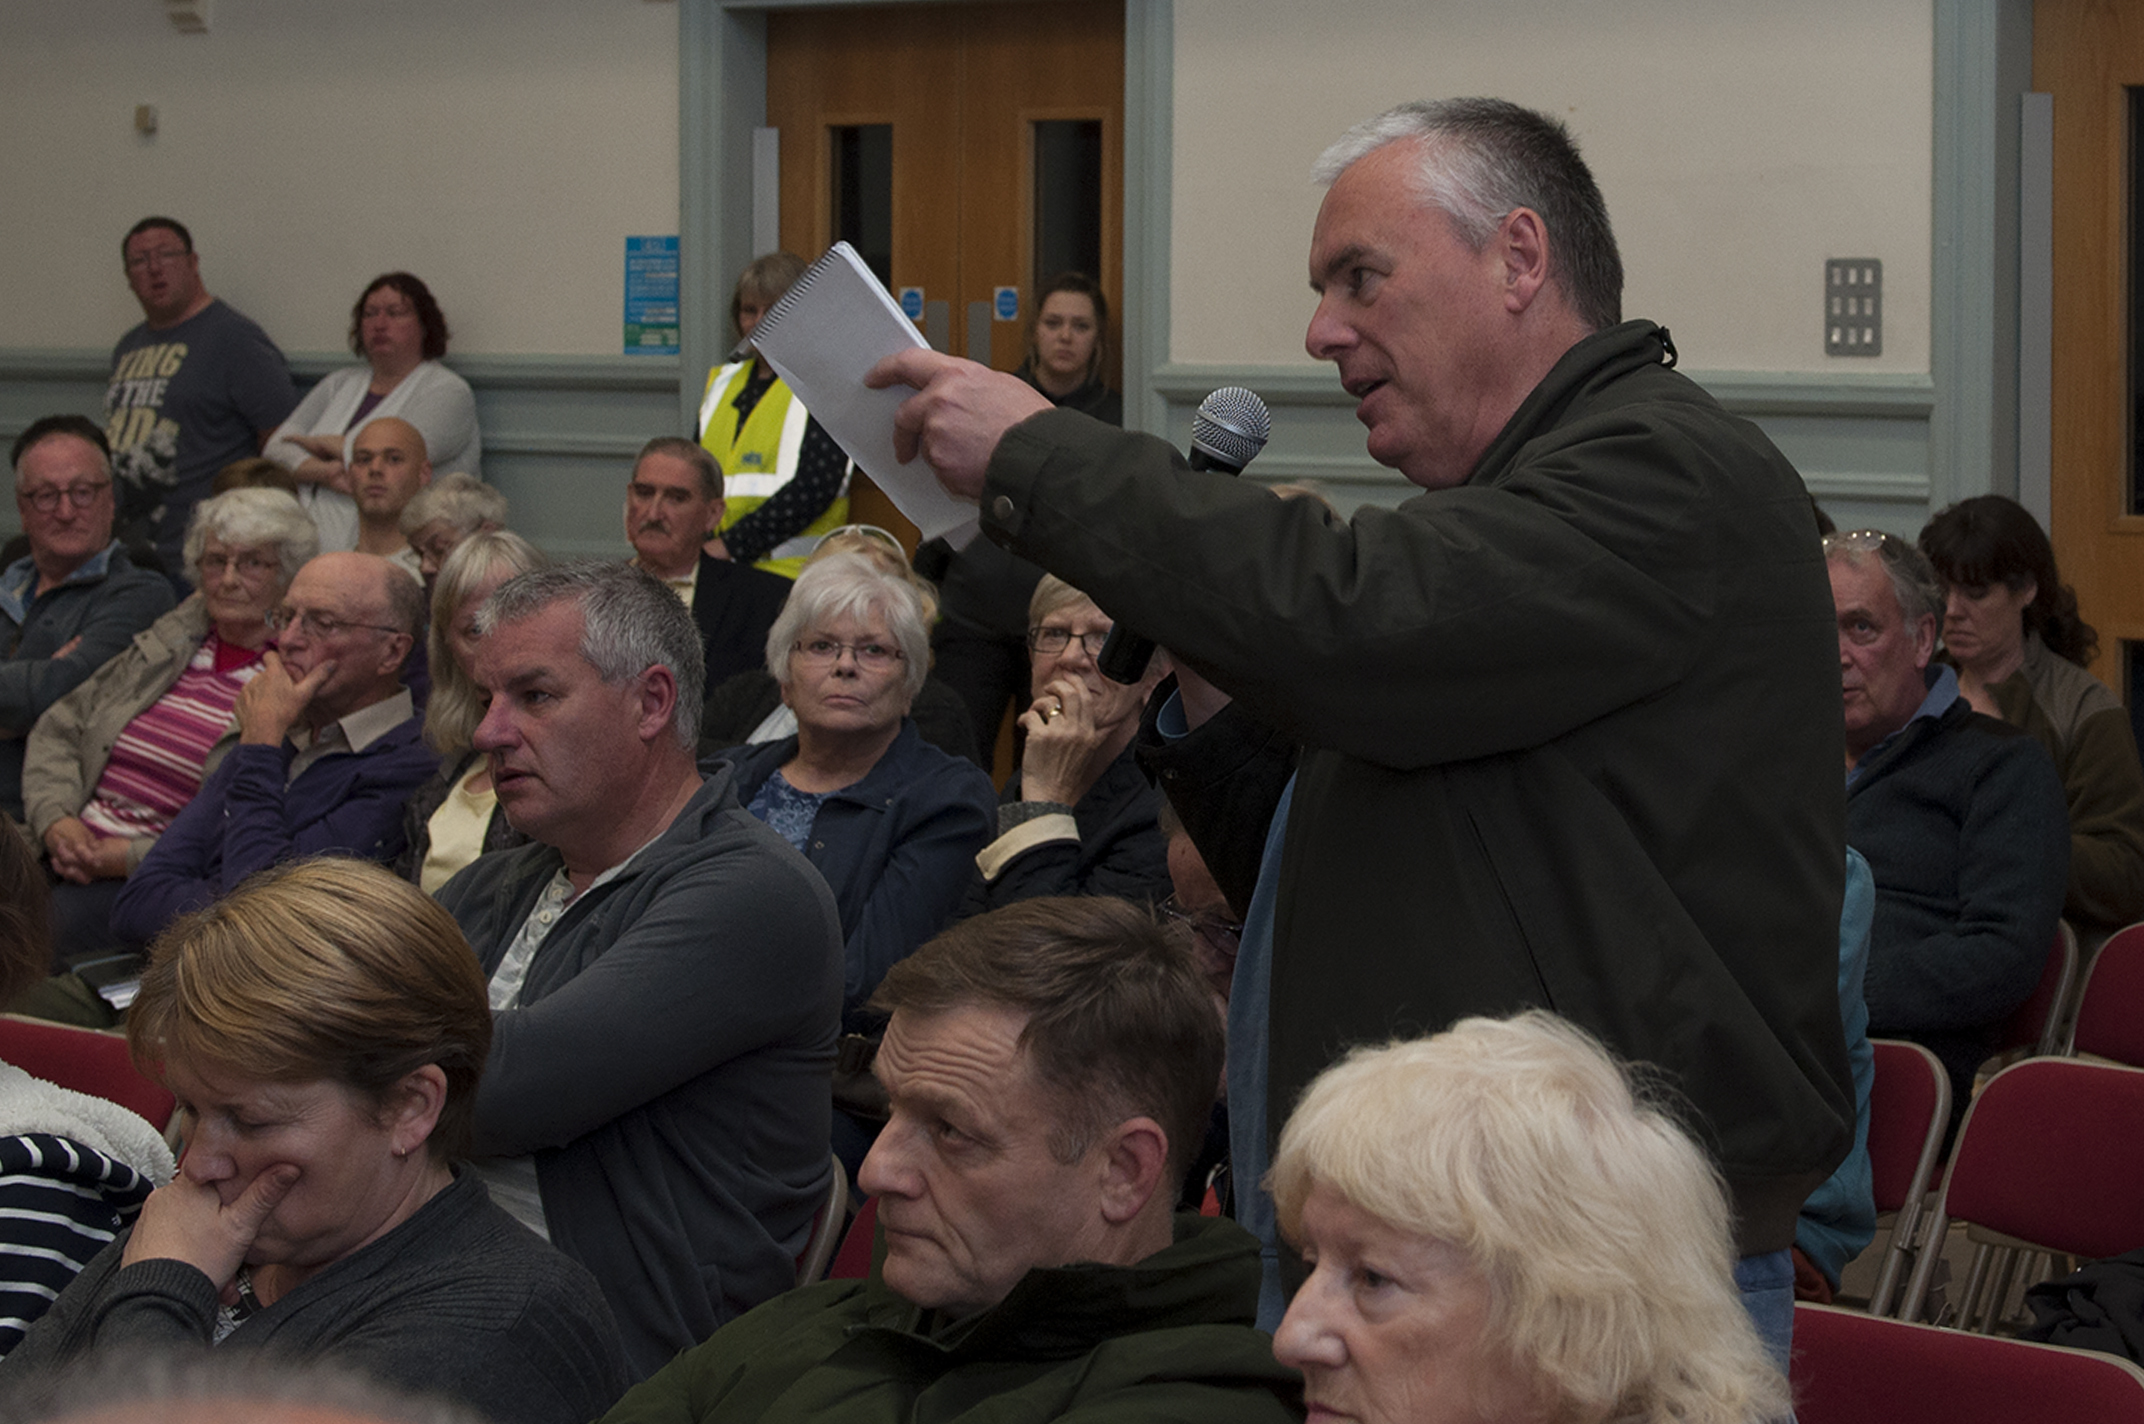 A member of the public puts a point across to the panel in Kirriemuir.